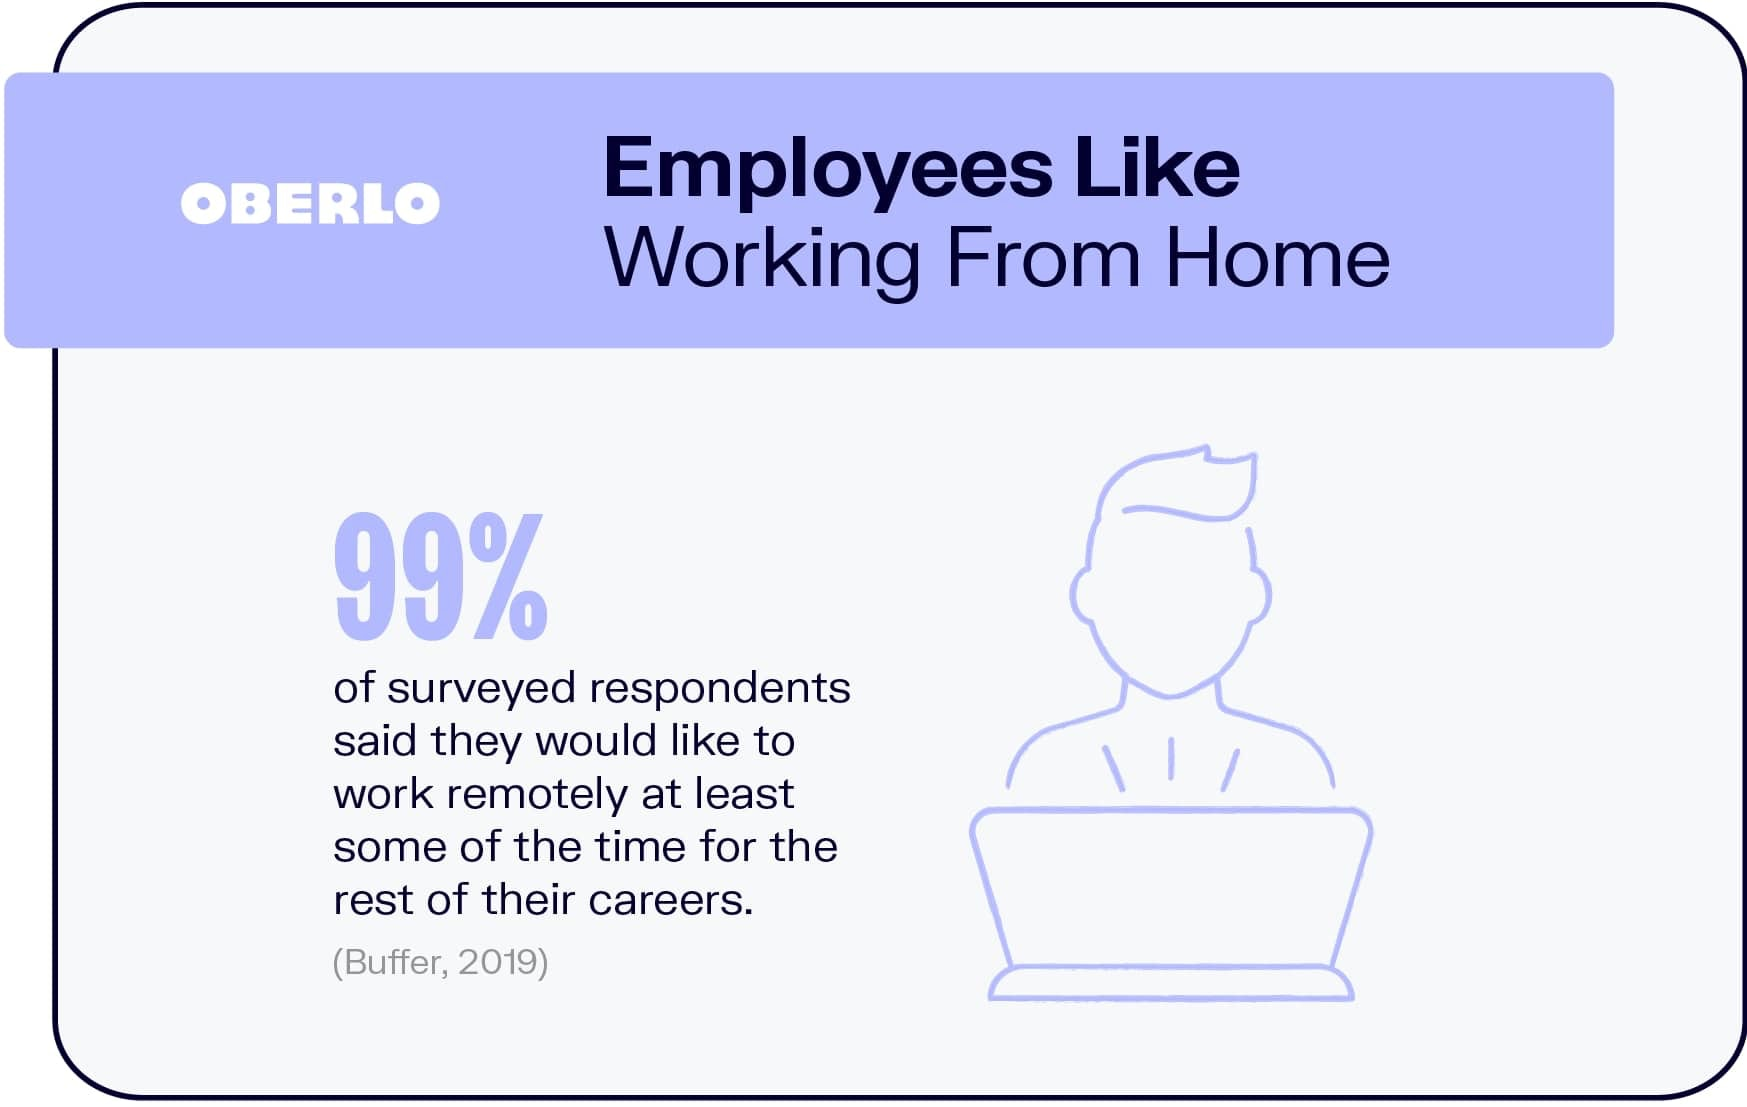 Employees Like Working From Home